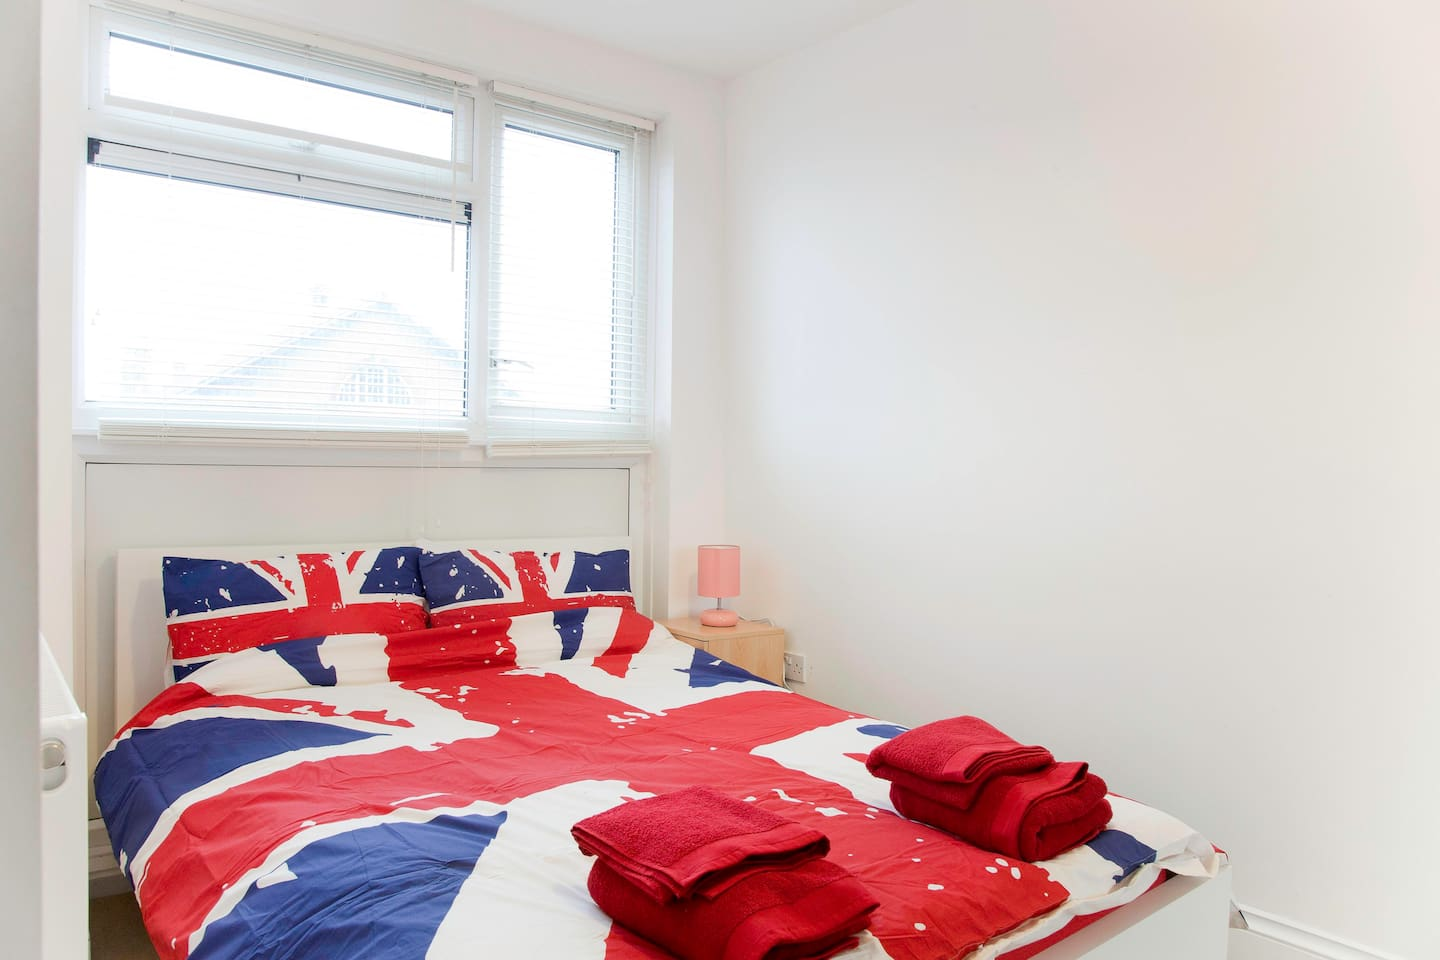 Comfy double bed, light airy room